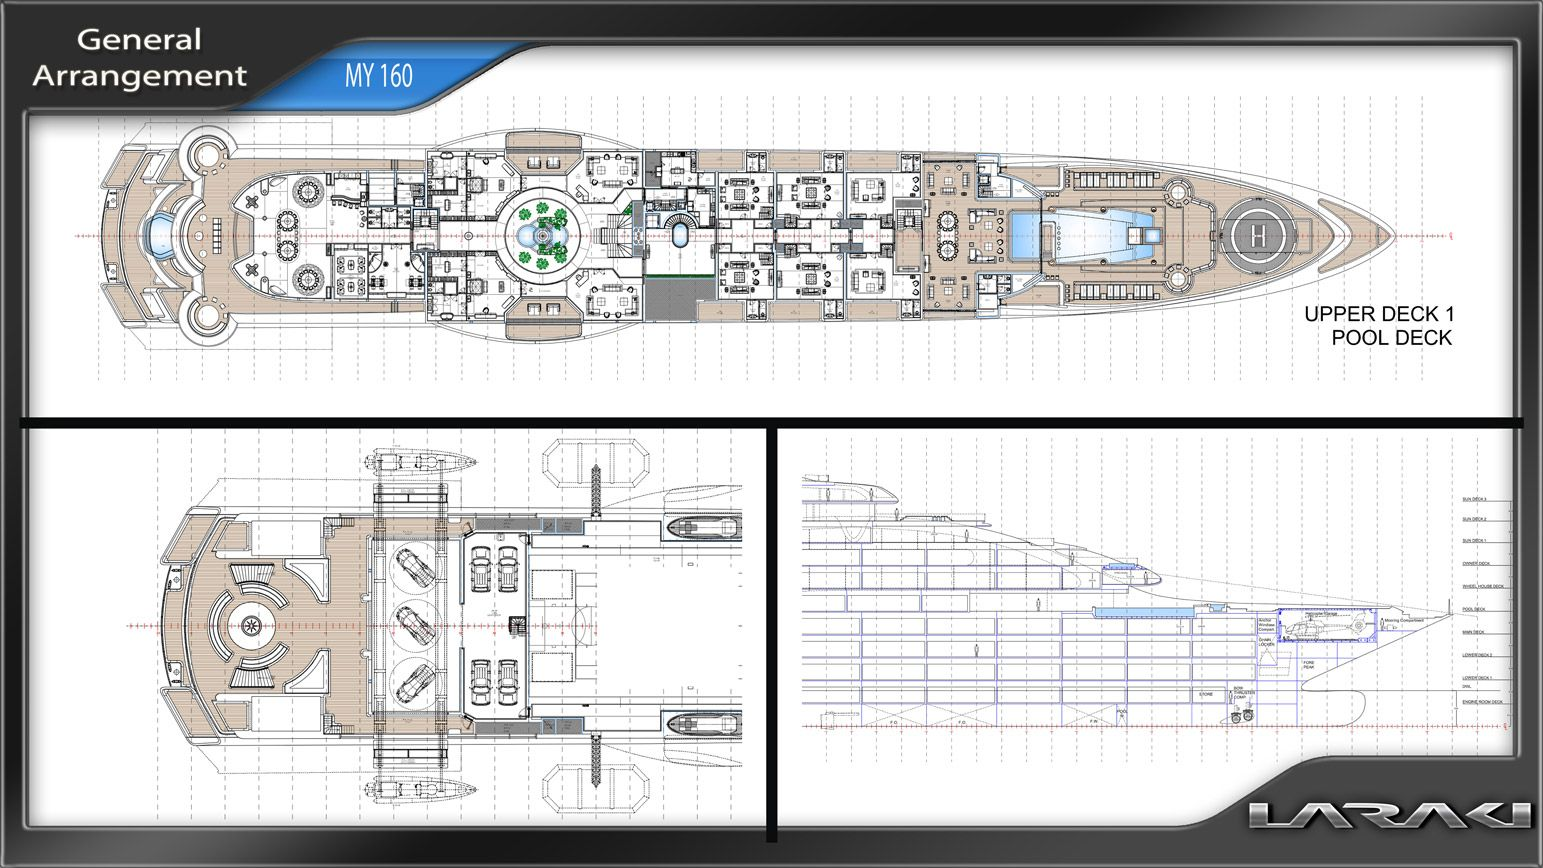 Laraki Yacht Design is undoubtedly able to conduct large ...